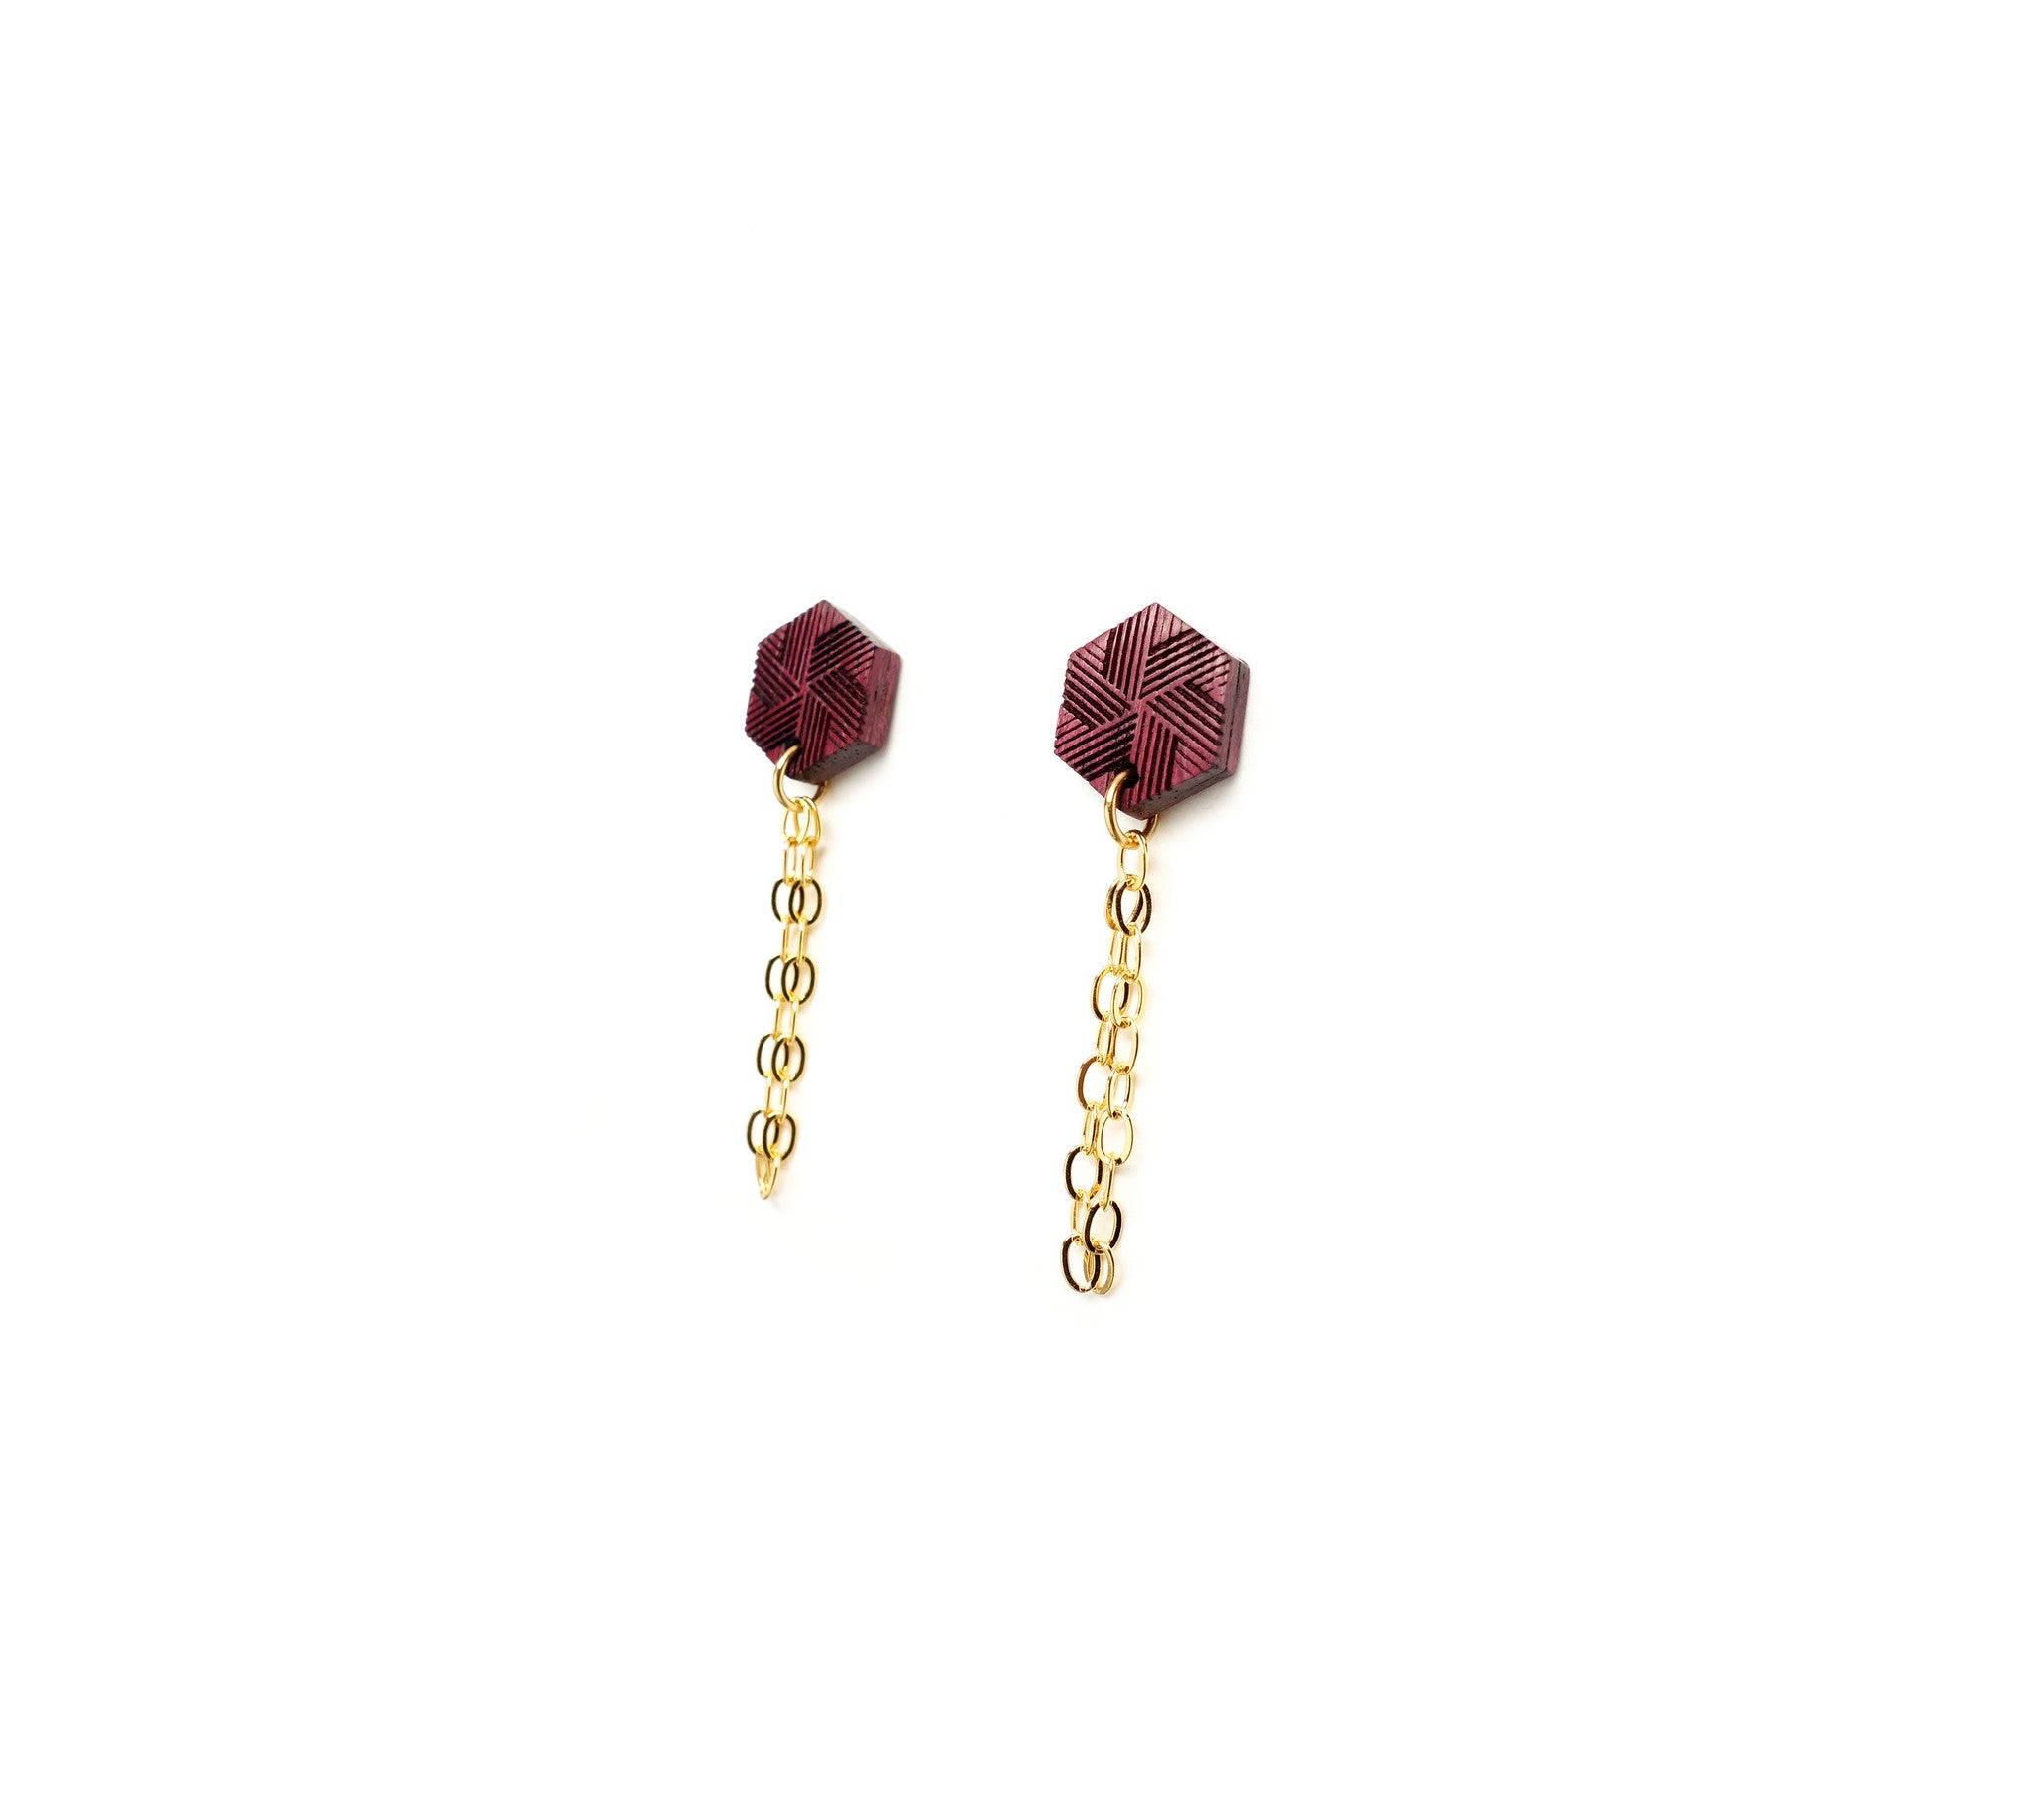 Hexagon & Chain Stud Earrings - WENWEN designs